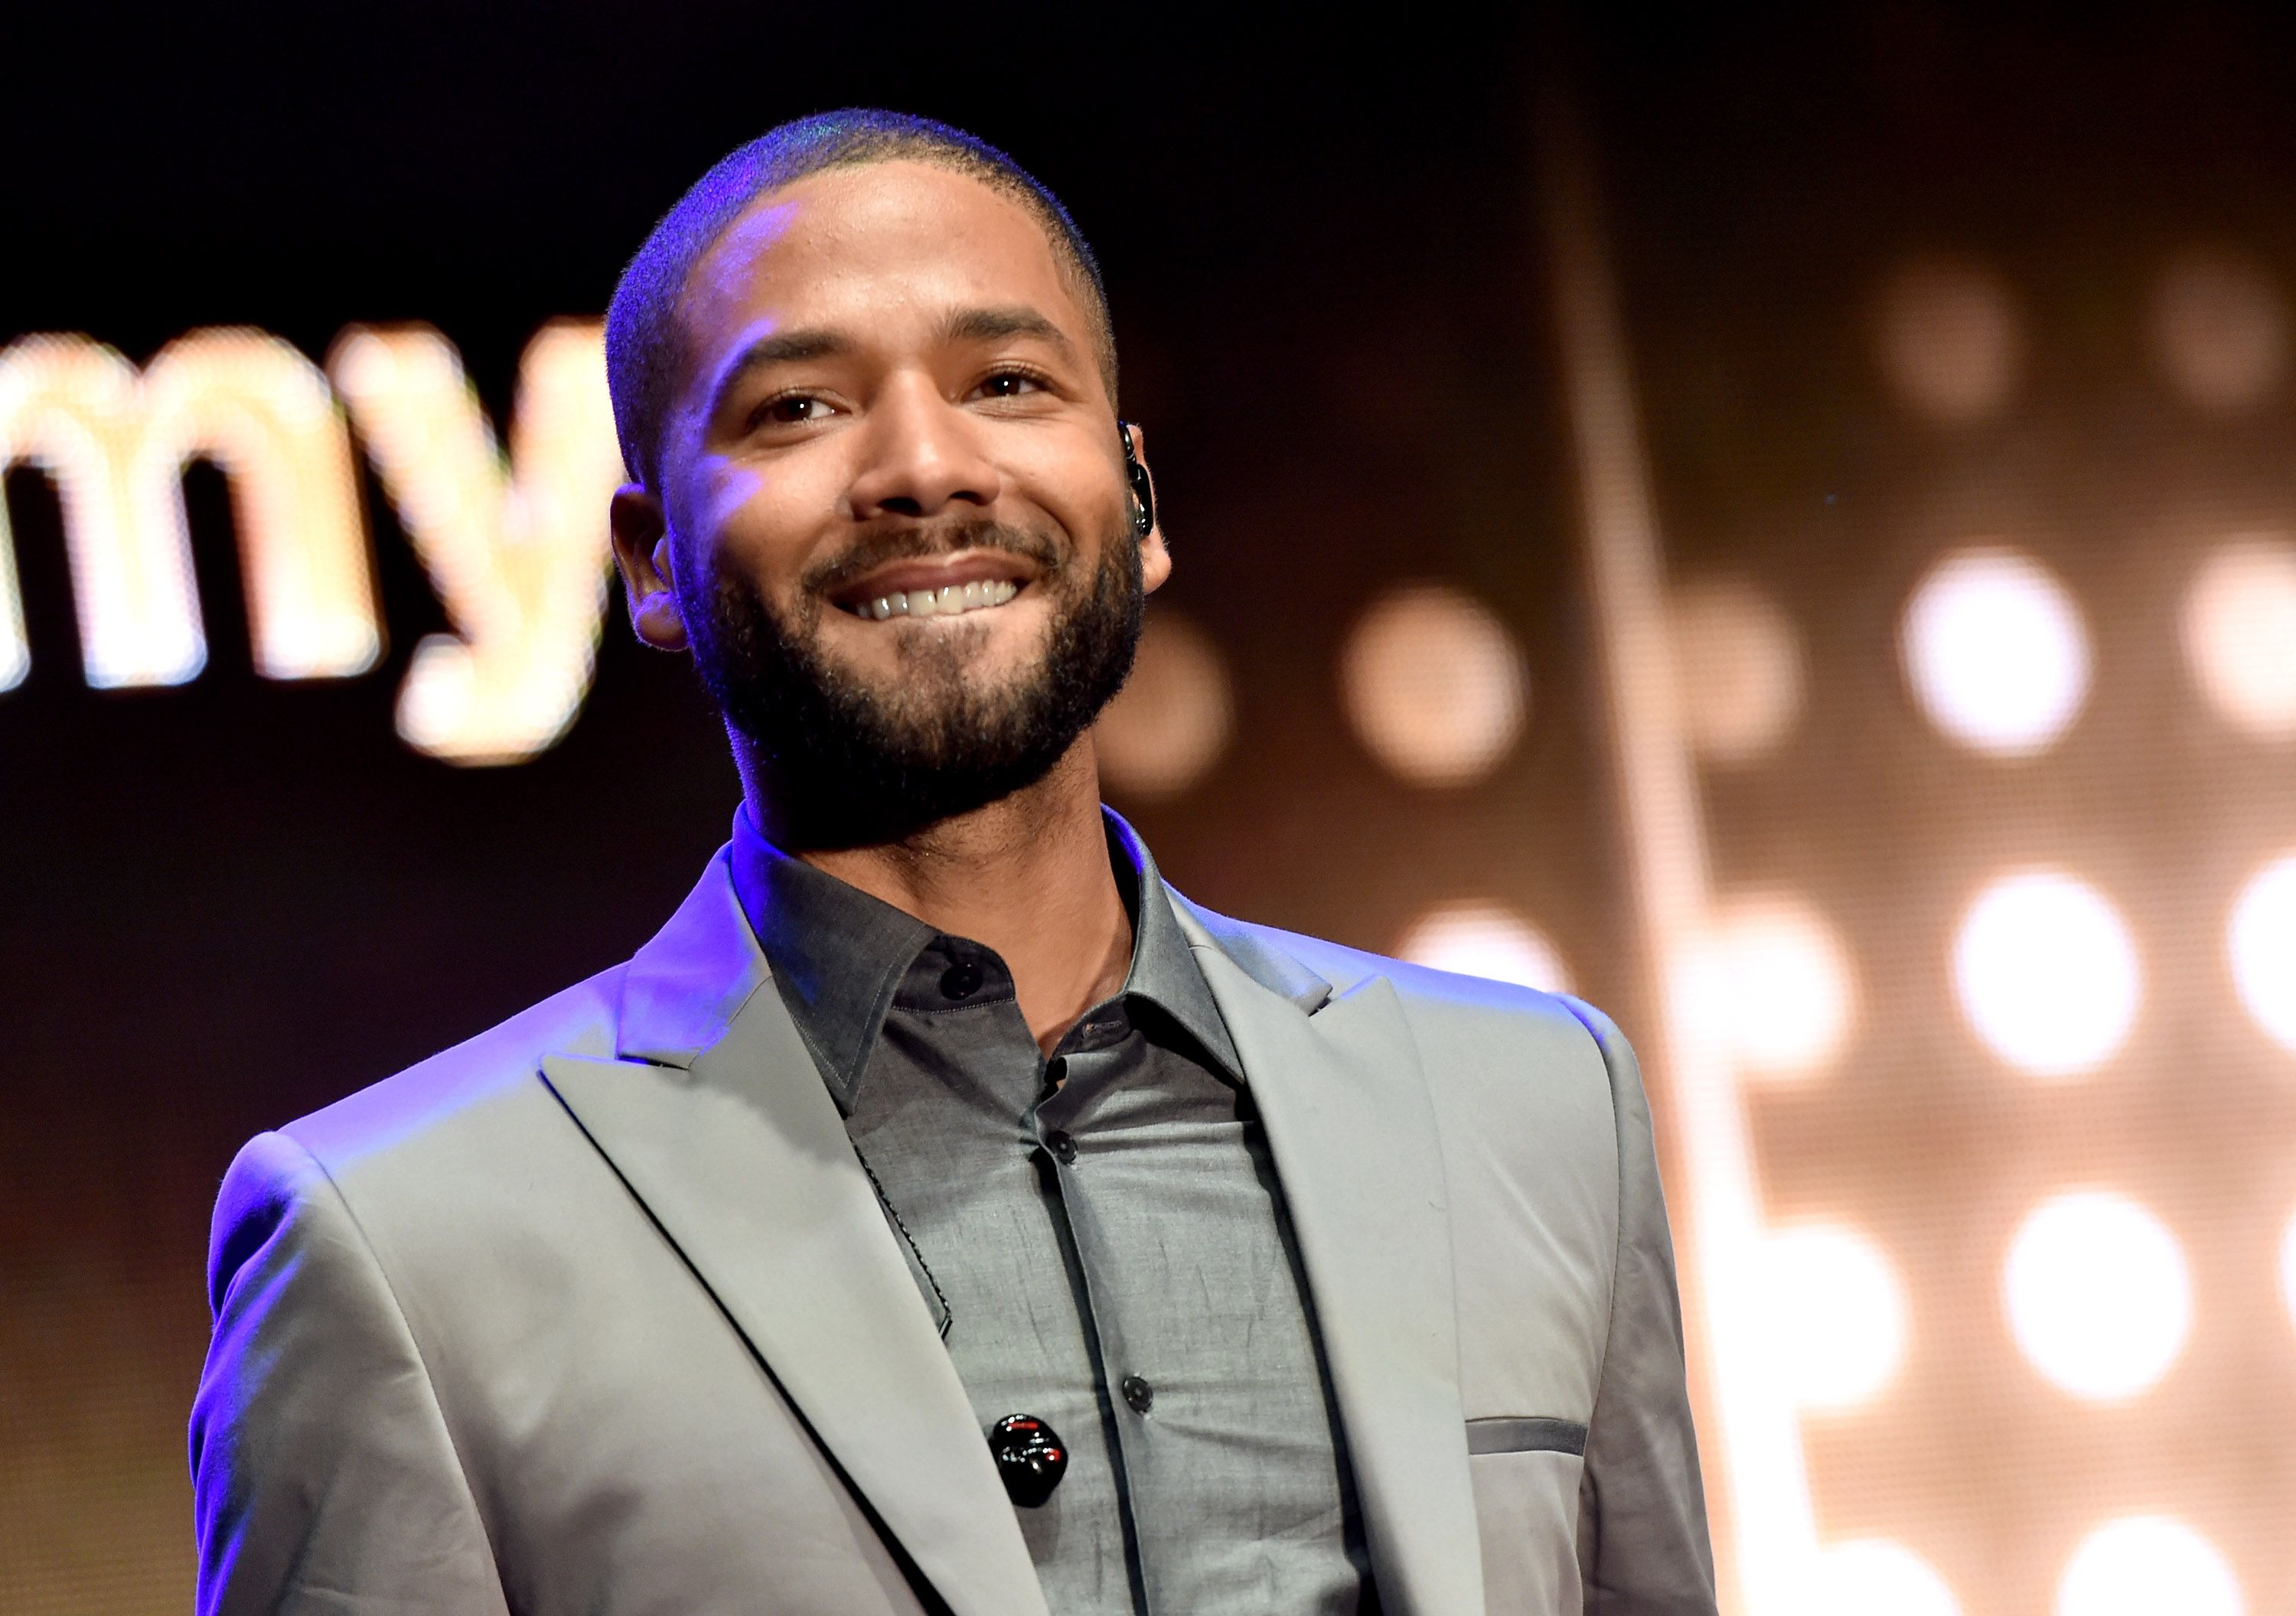 Jussie Smollett and 'attacker' allegedly visited upscale Chicago bathhouse